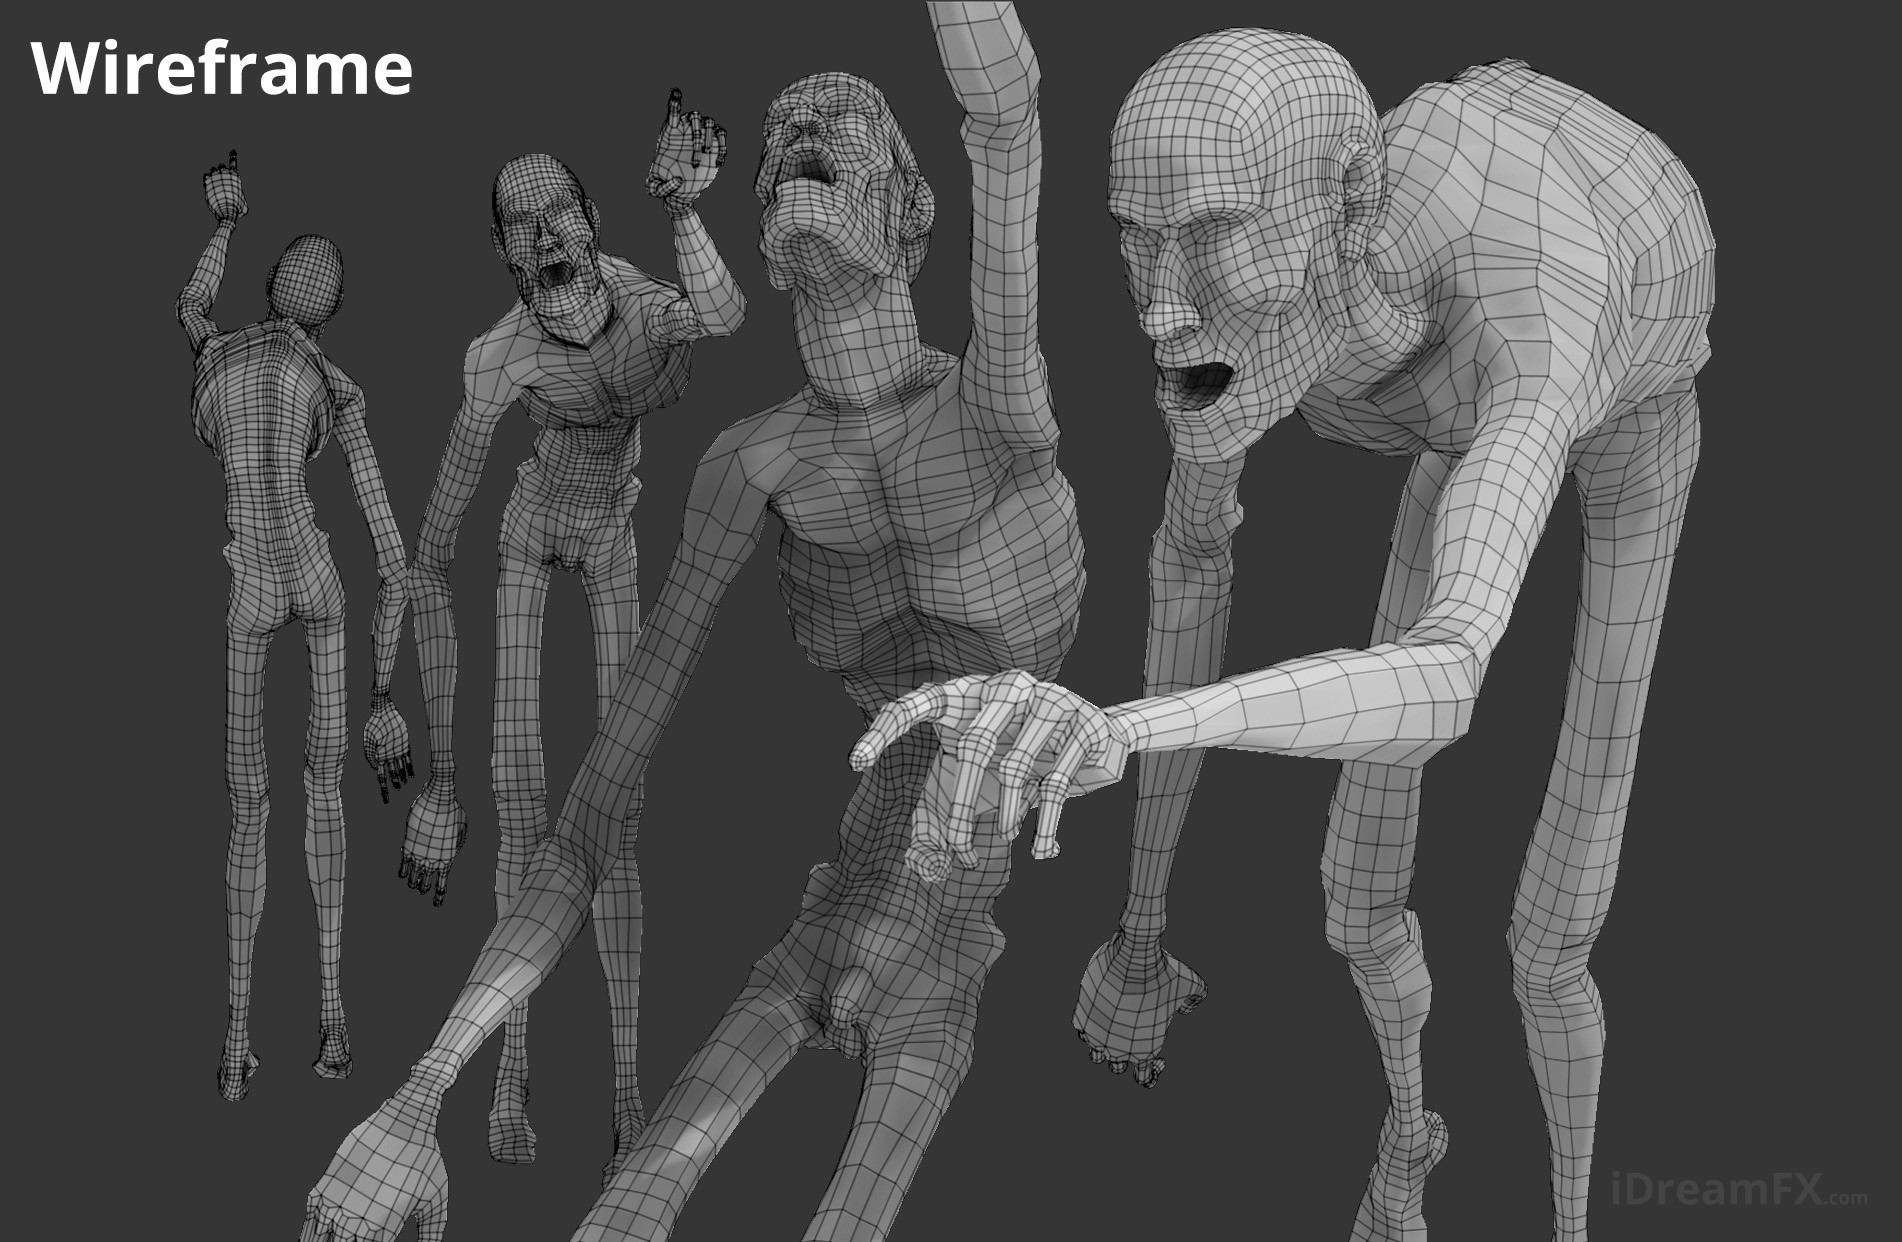 Andrea mele wireframe 01